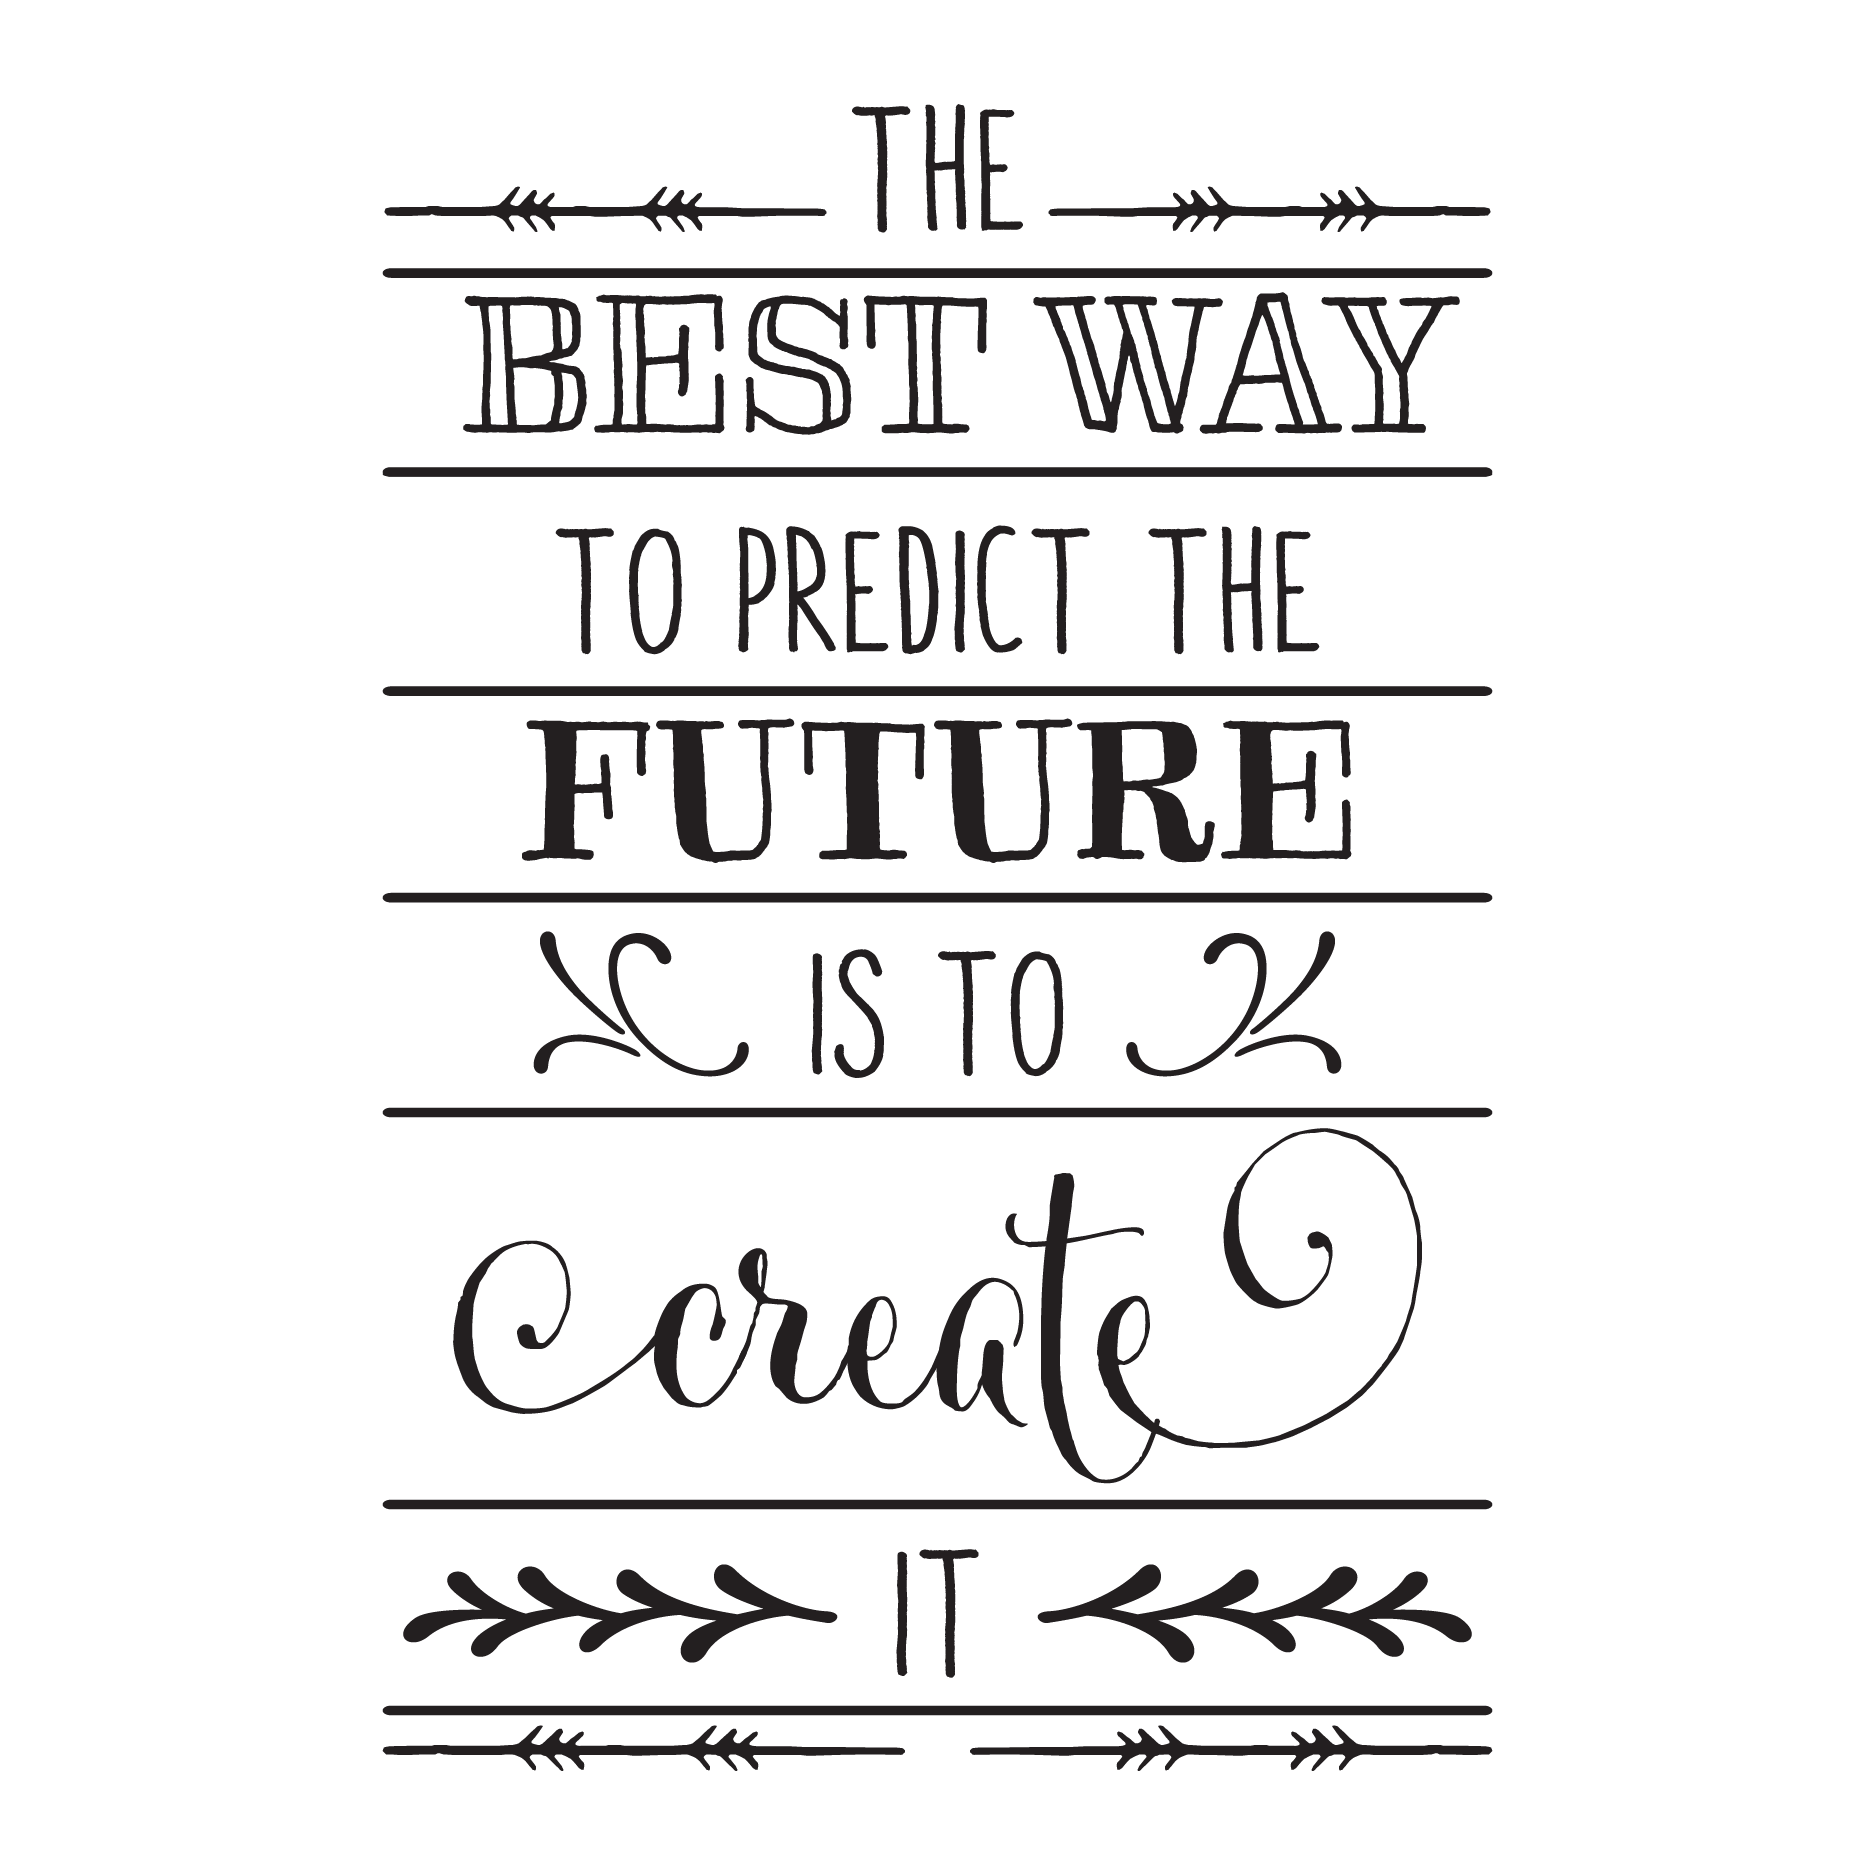 Create The Future Wall Quotes™ Decal